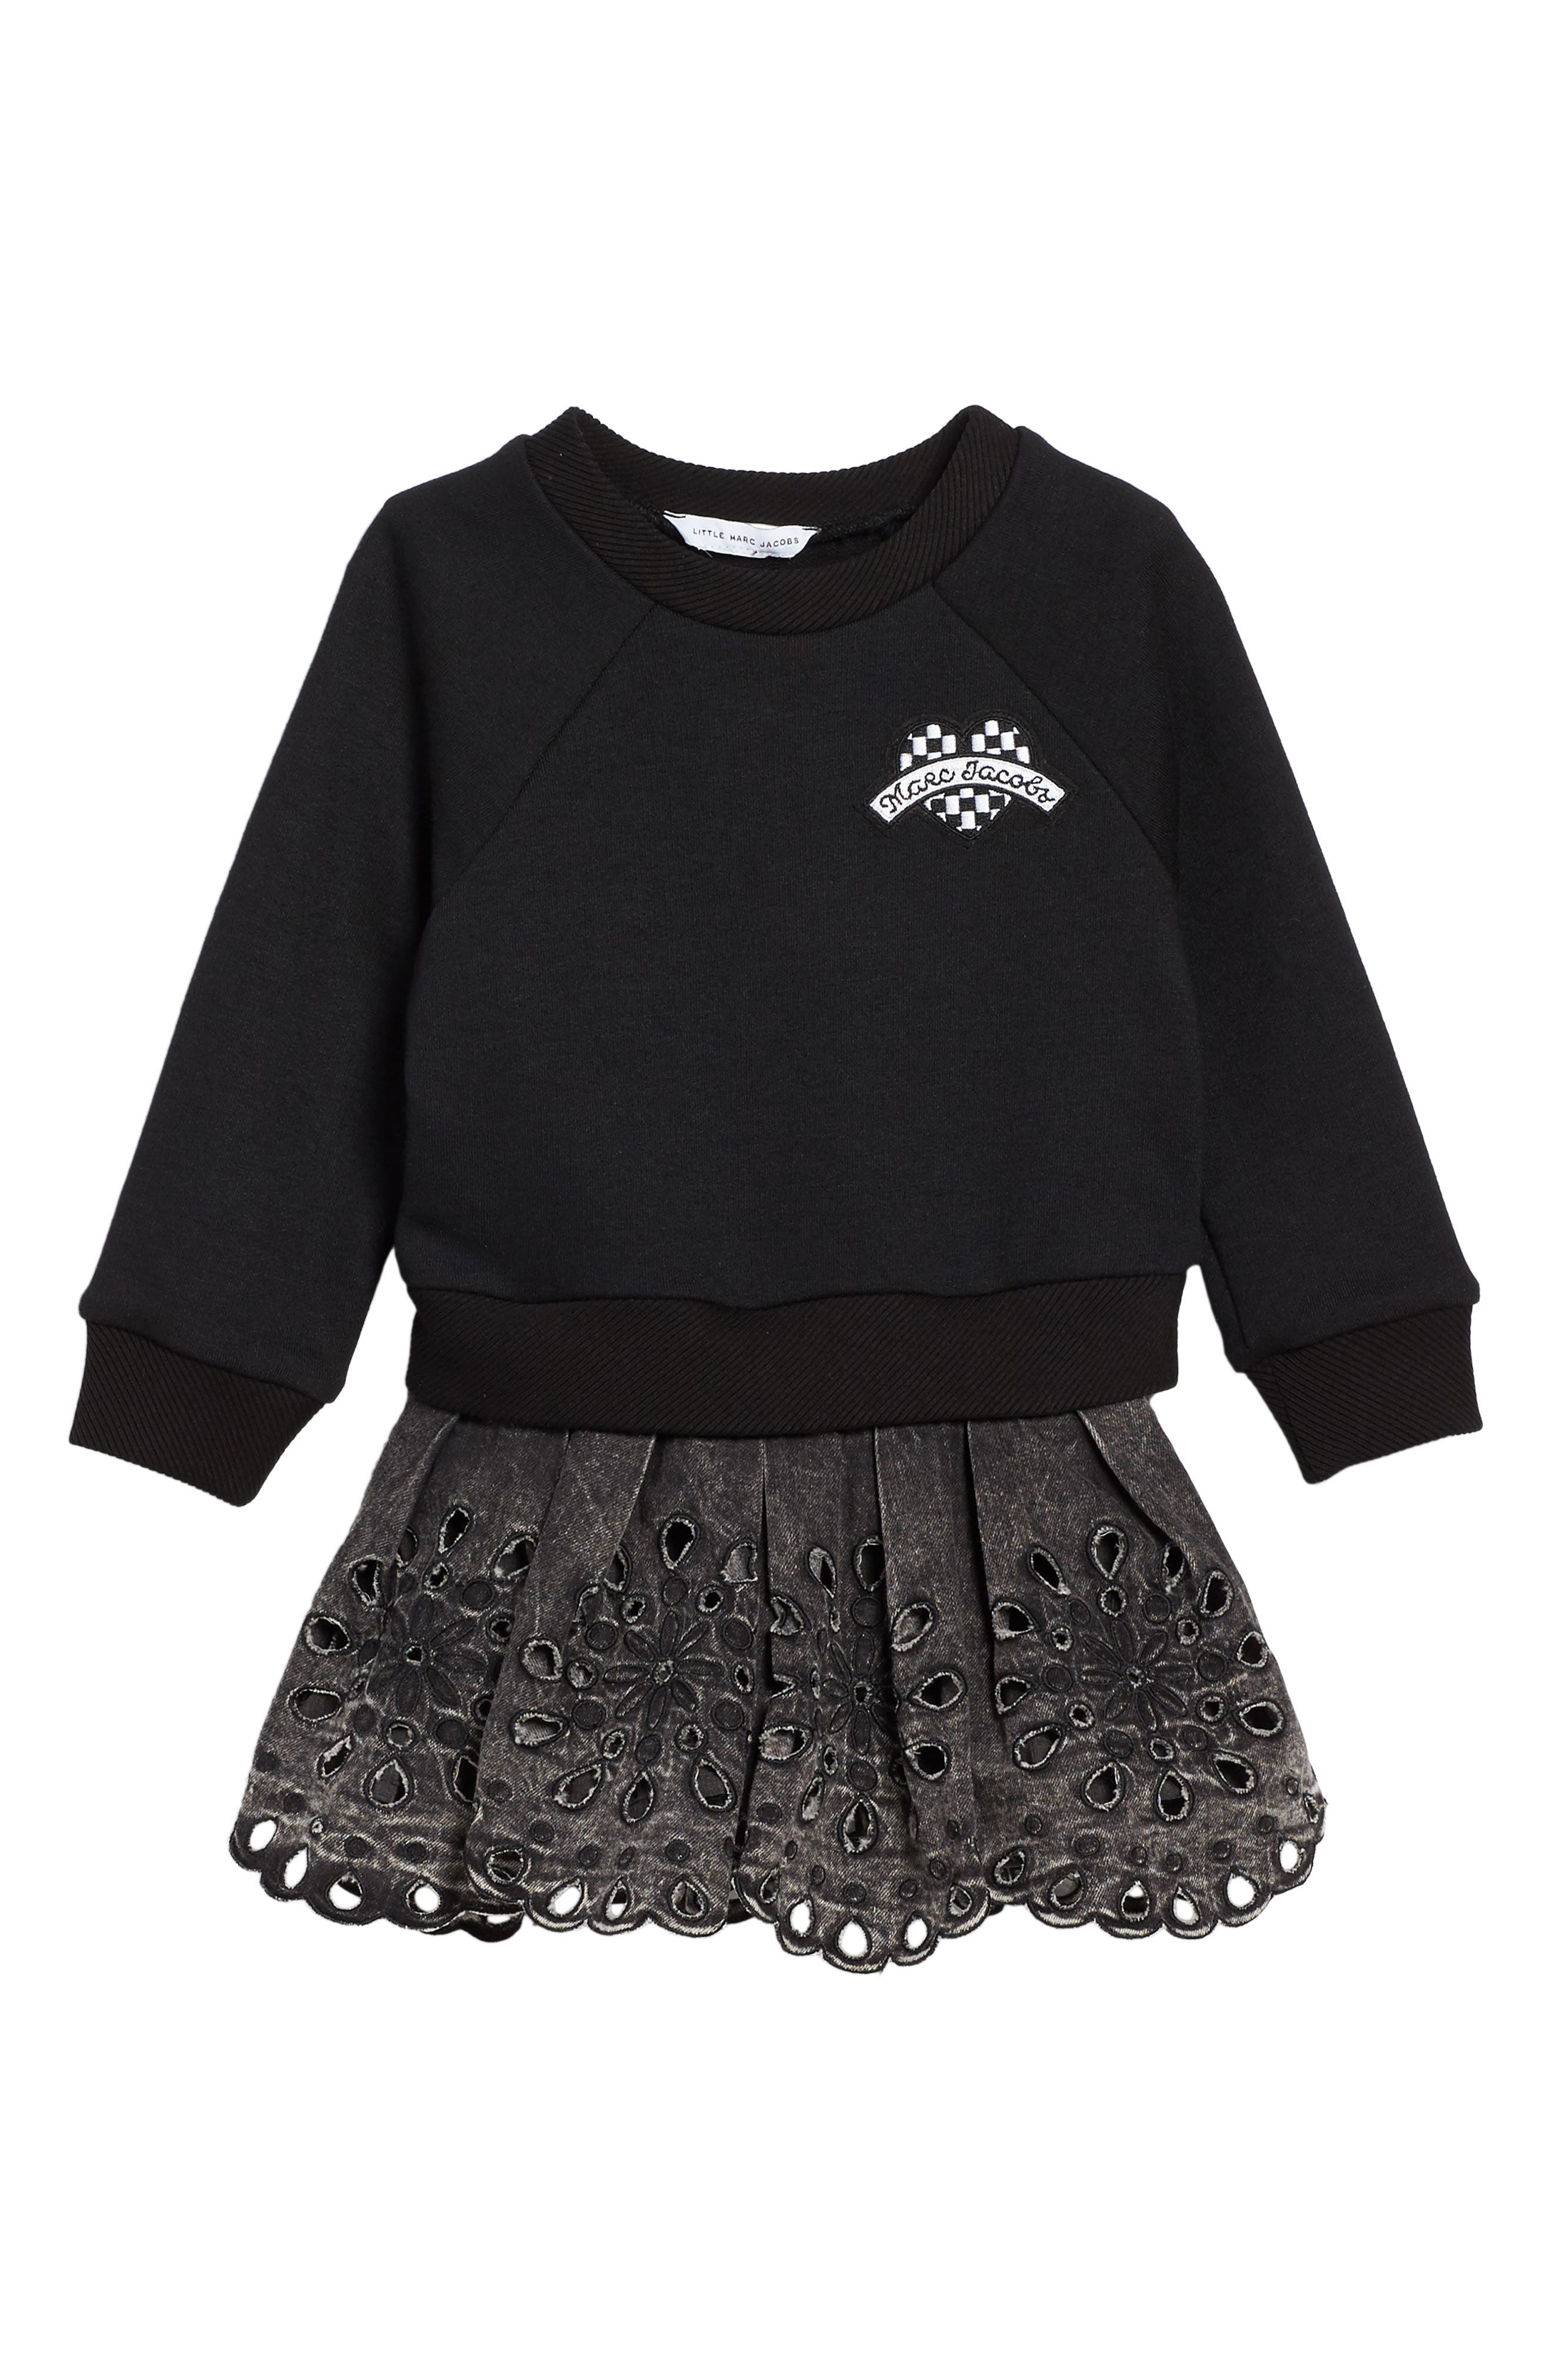 Sweatshirt & Skirt Set,                         Main,                         color, 001